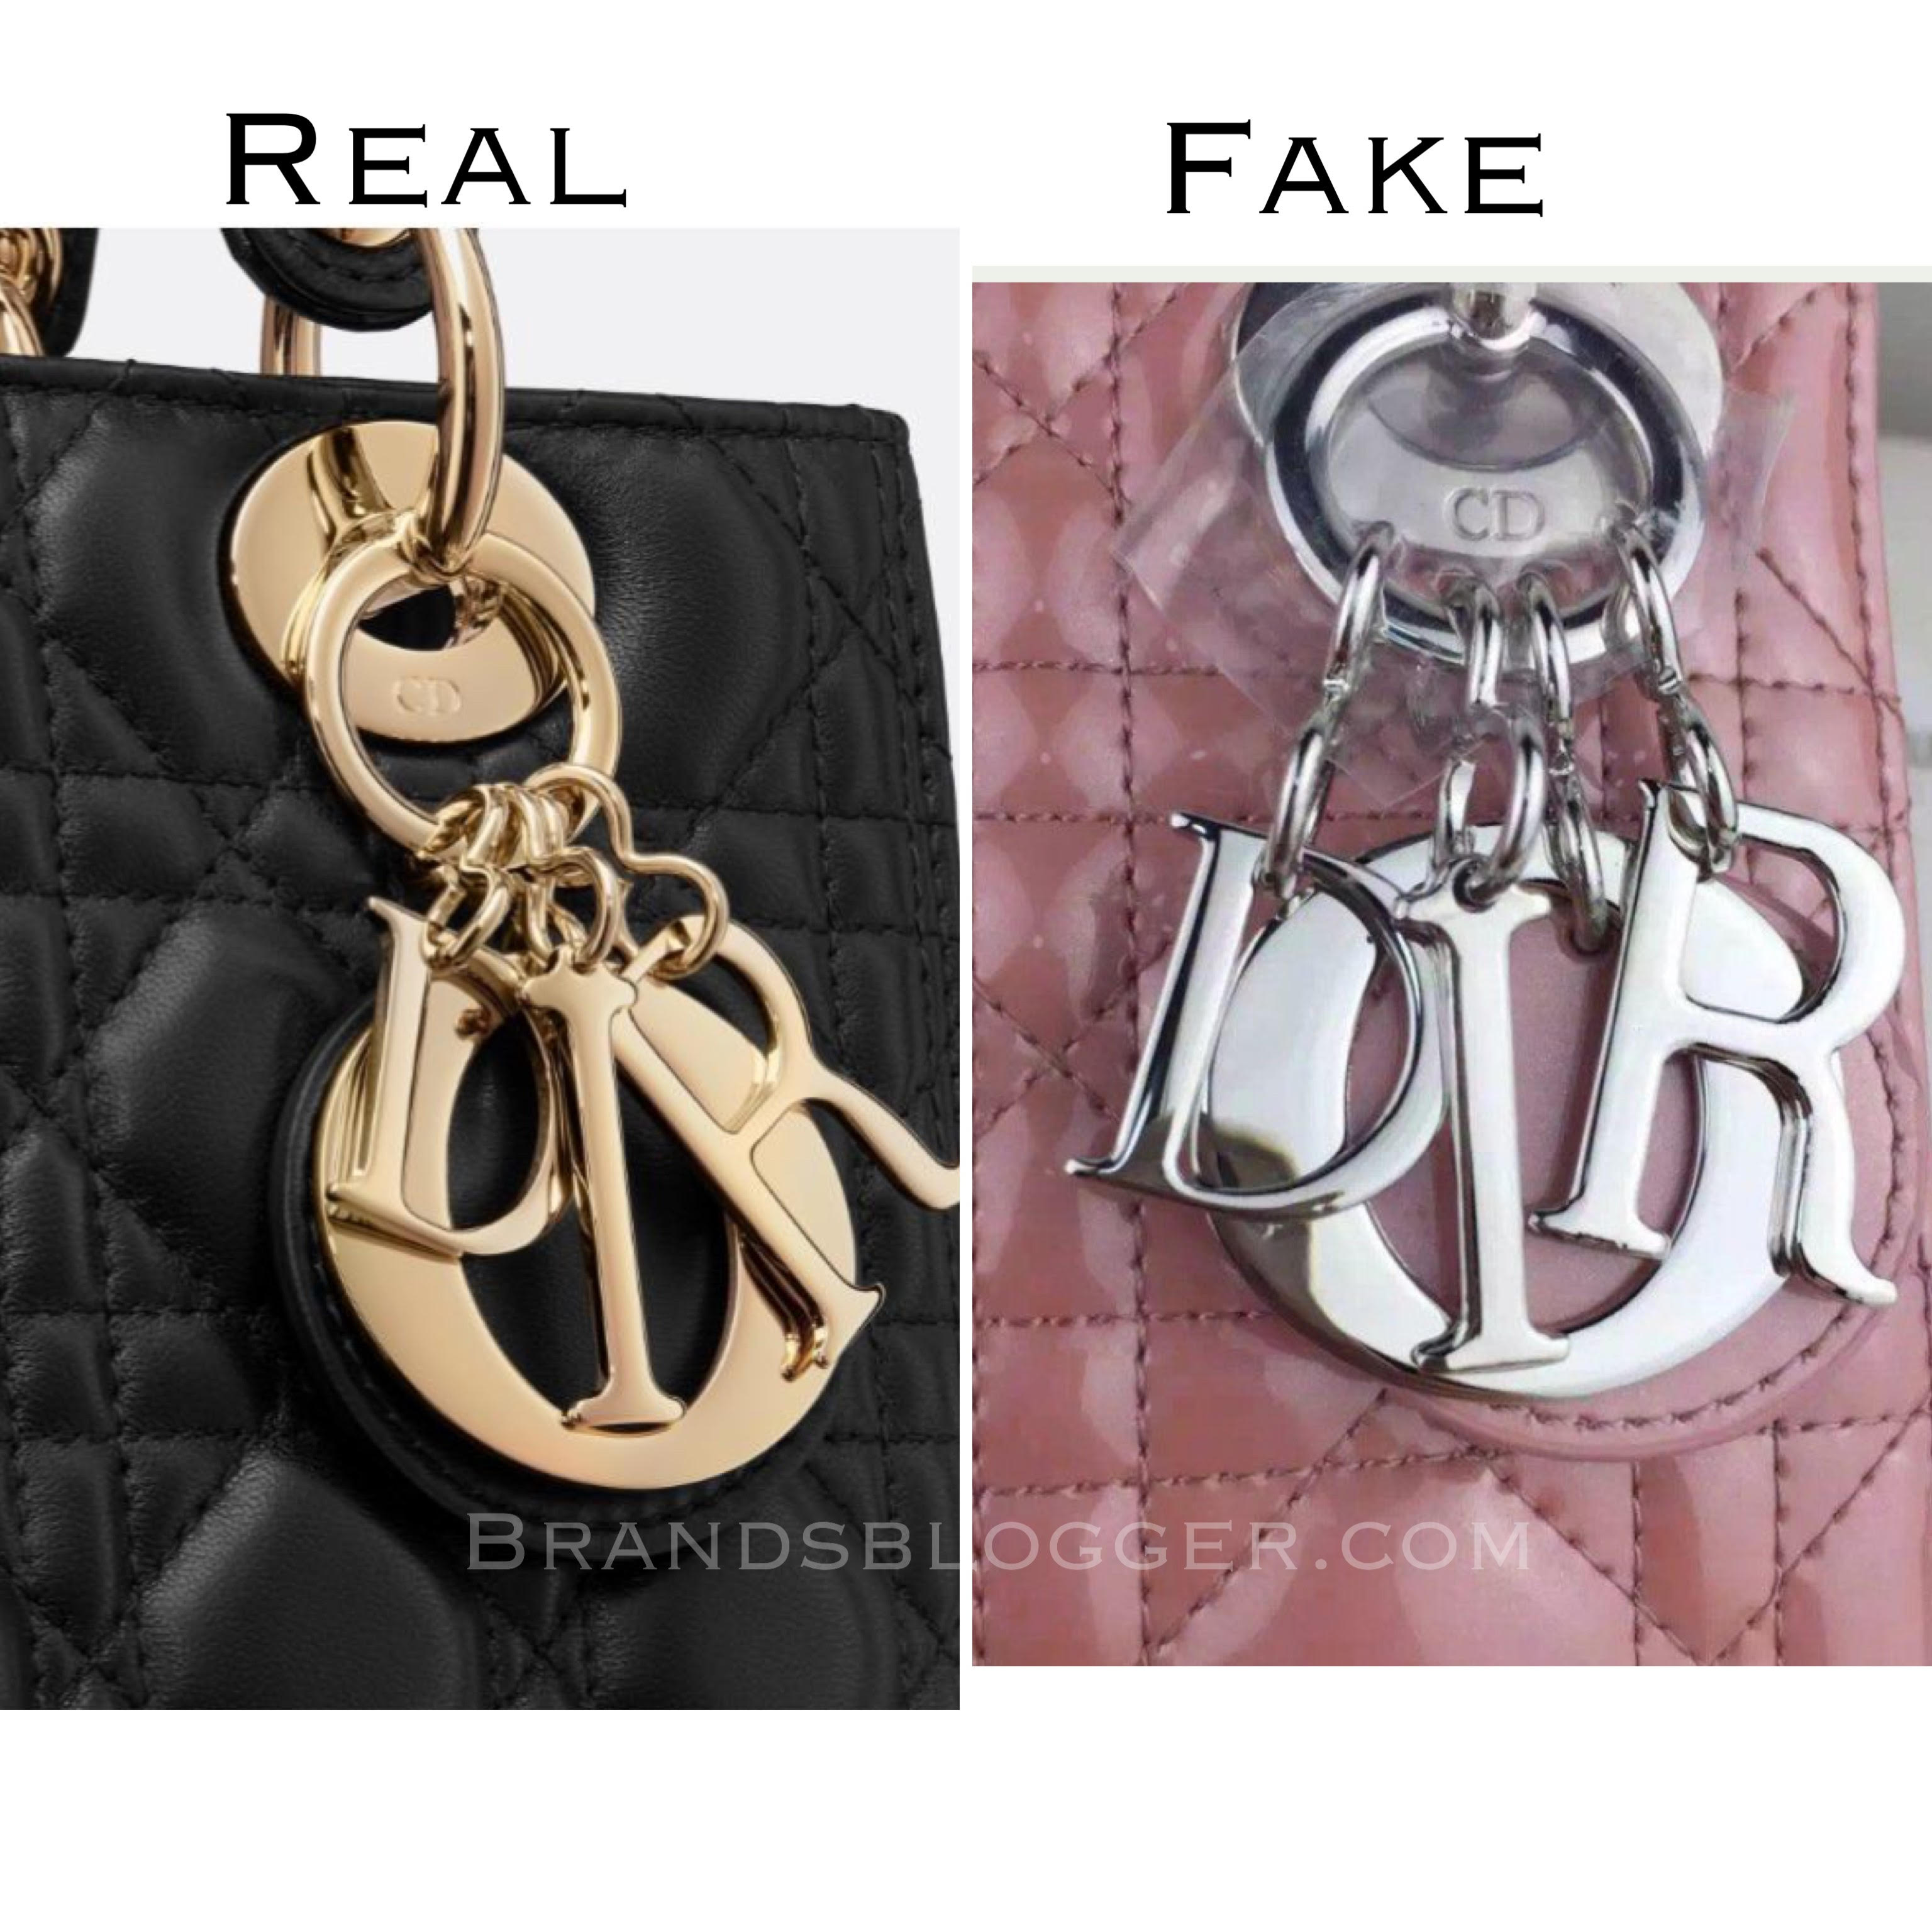 In the original Lady Dior bag is written Christian Dior 62df22c168bc9